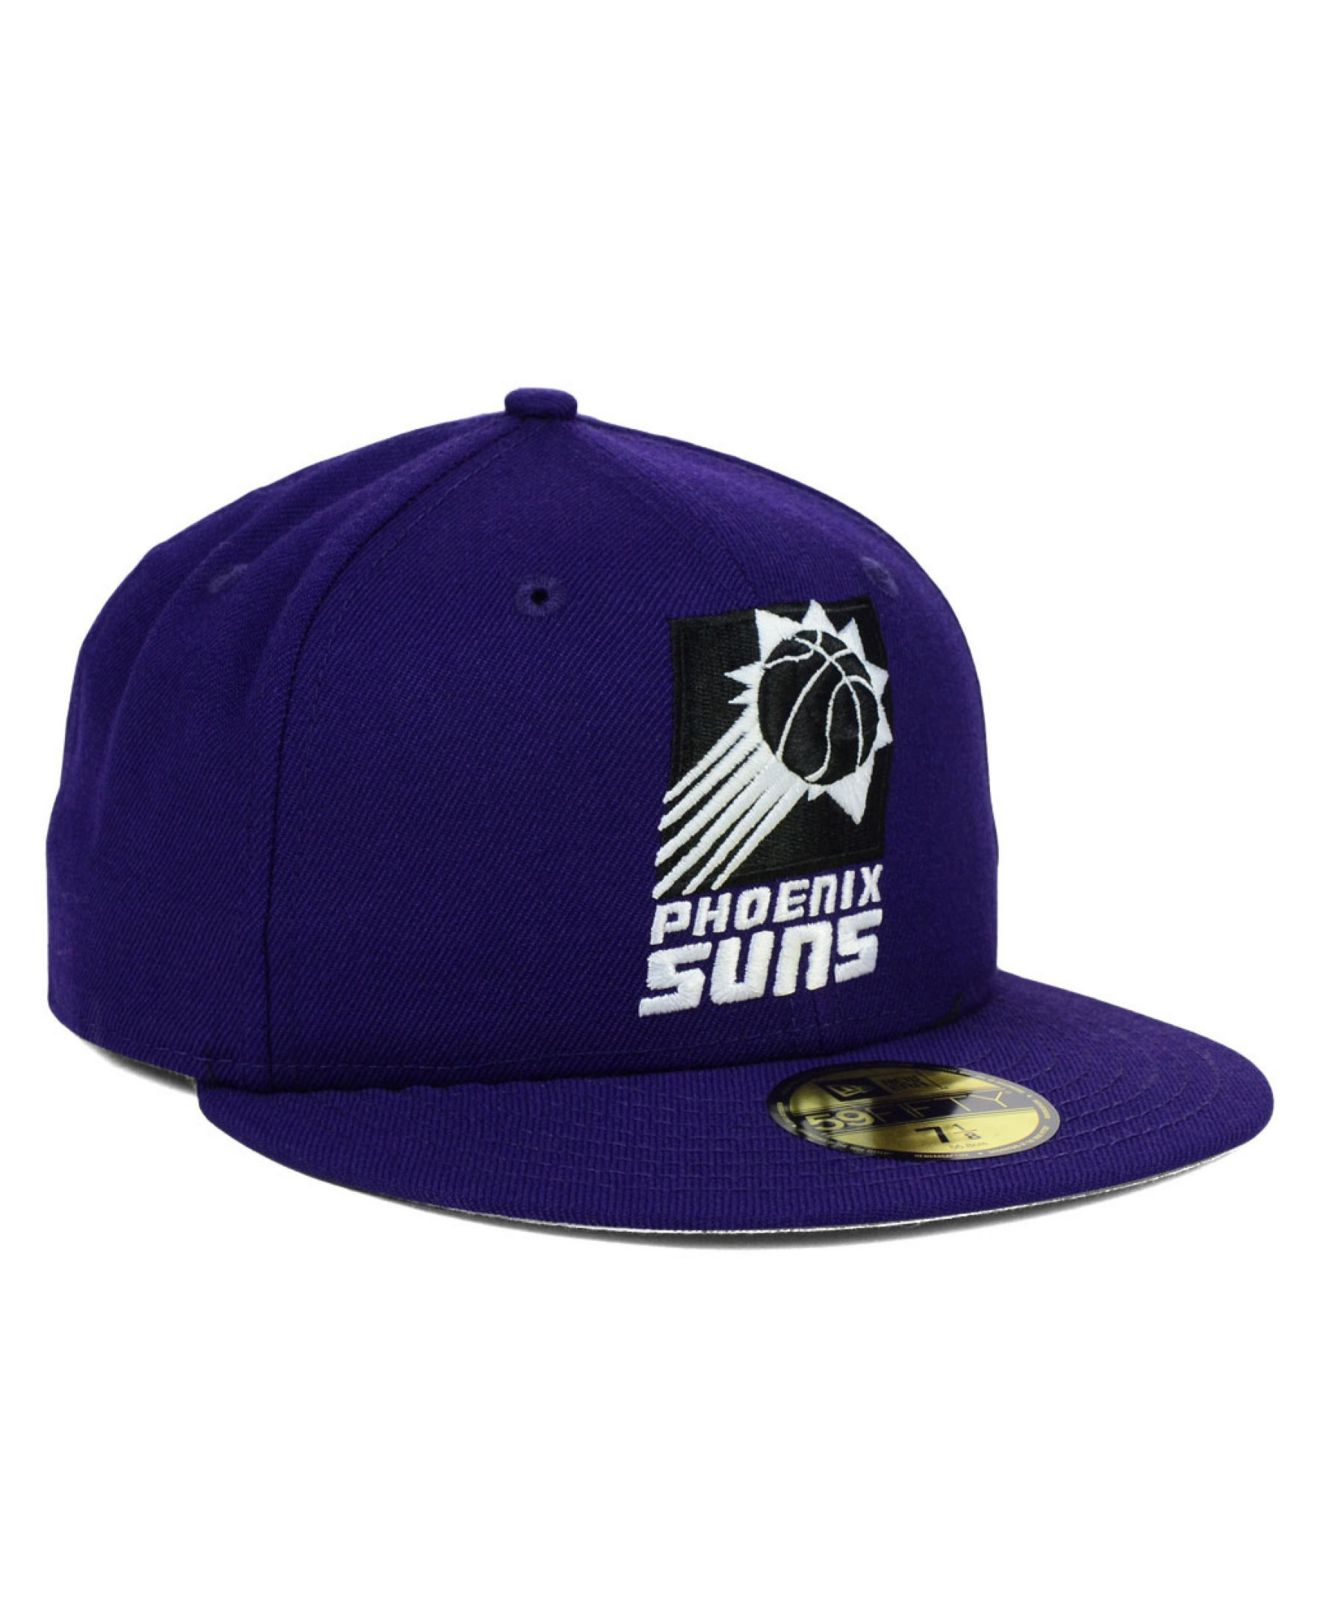 timeless design 6525d 5adbe Lyst - Ktz Phoenix Suns Back To Basic 59fifty Cap in Purple for Men